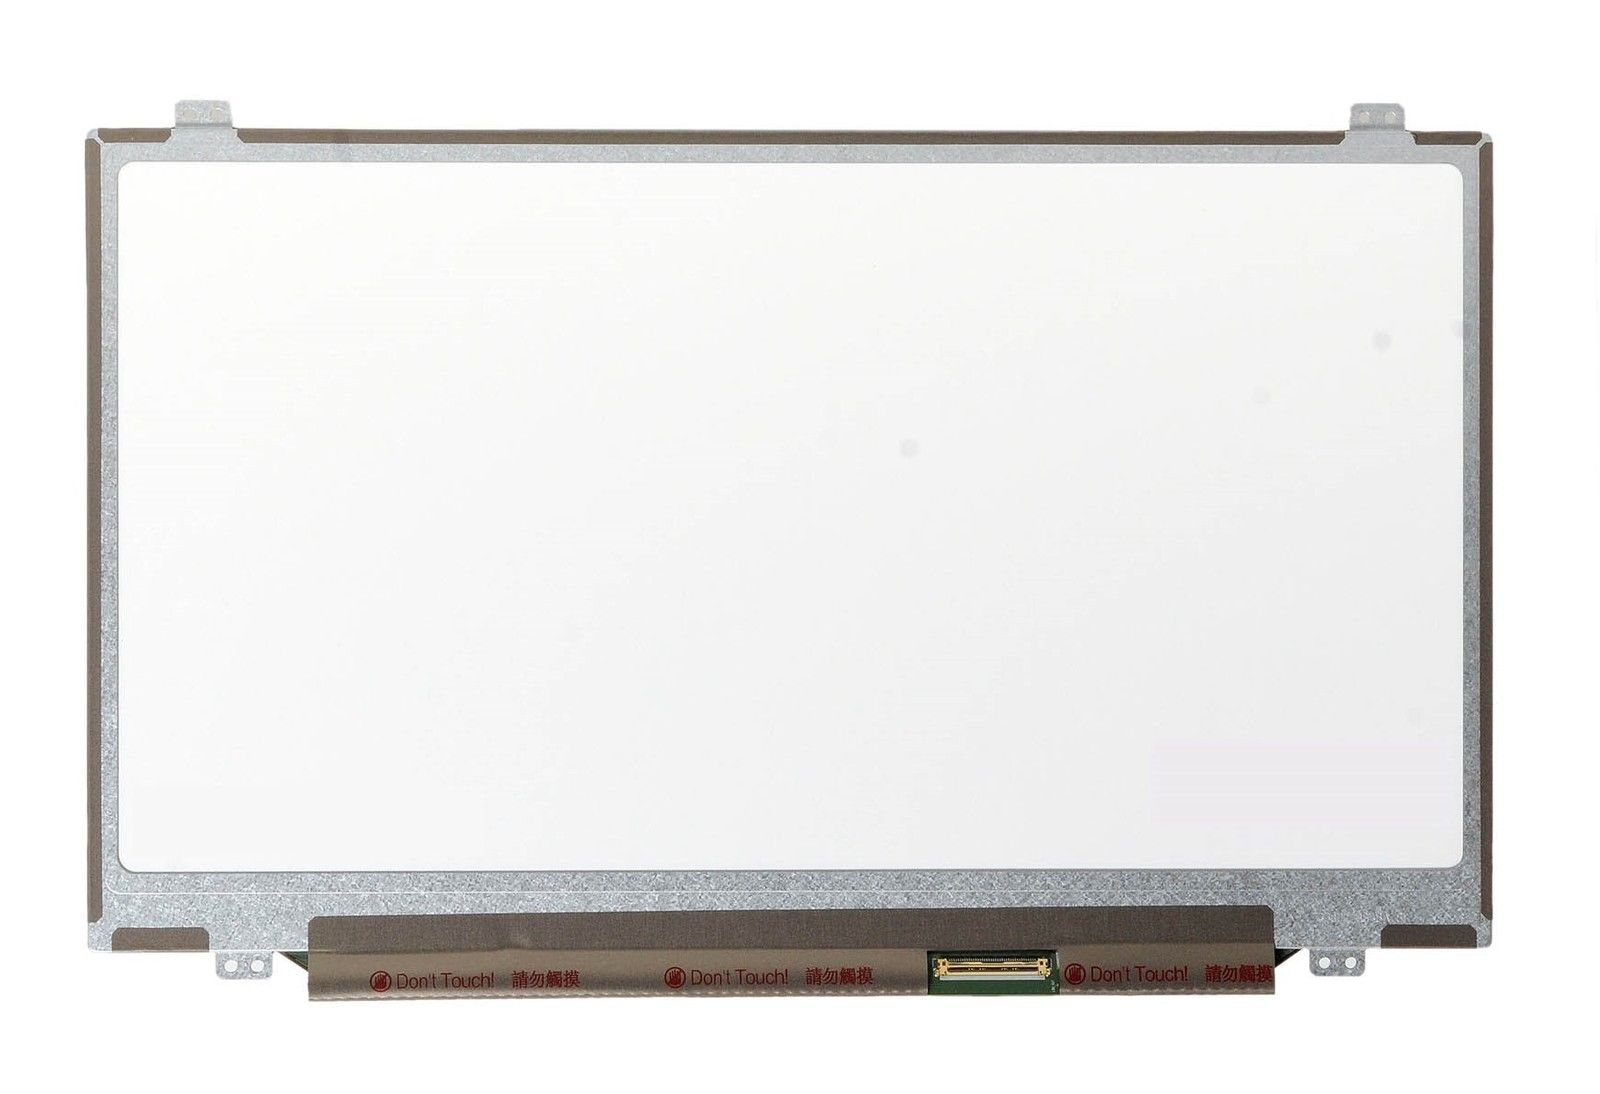 For Hp Elitebook Folio 9470m Replacement LAPTOP LCD Screen 14.0 WXGA HD LED (N140BGE-LA2) new a 12 1 for hp elitebook 2540p 2740p 2730p laptop lcd screen display pannel wxga 1280 800 ltn121at08 b121ew09